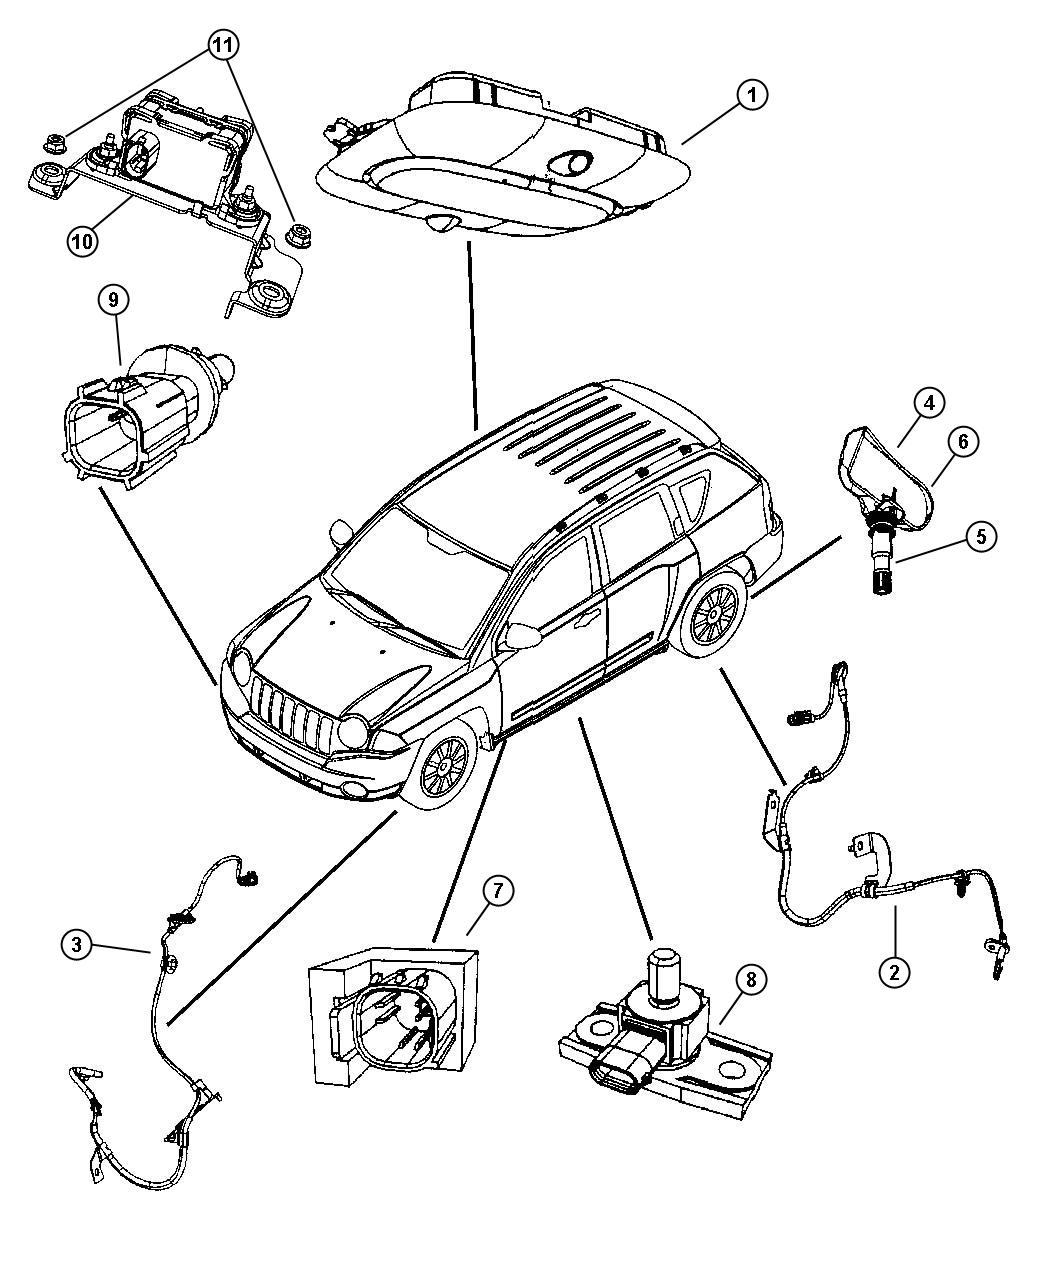 Jeep Patriot Sensor Dynamics Used For Lateral